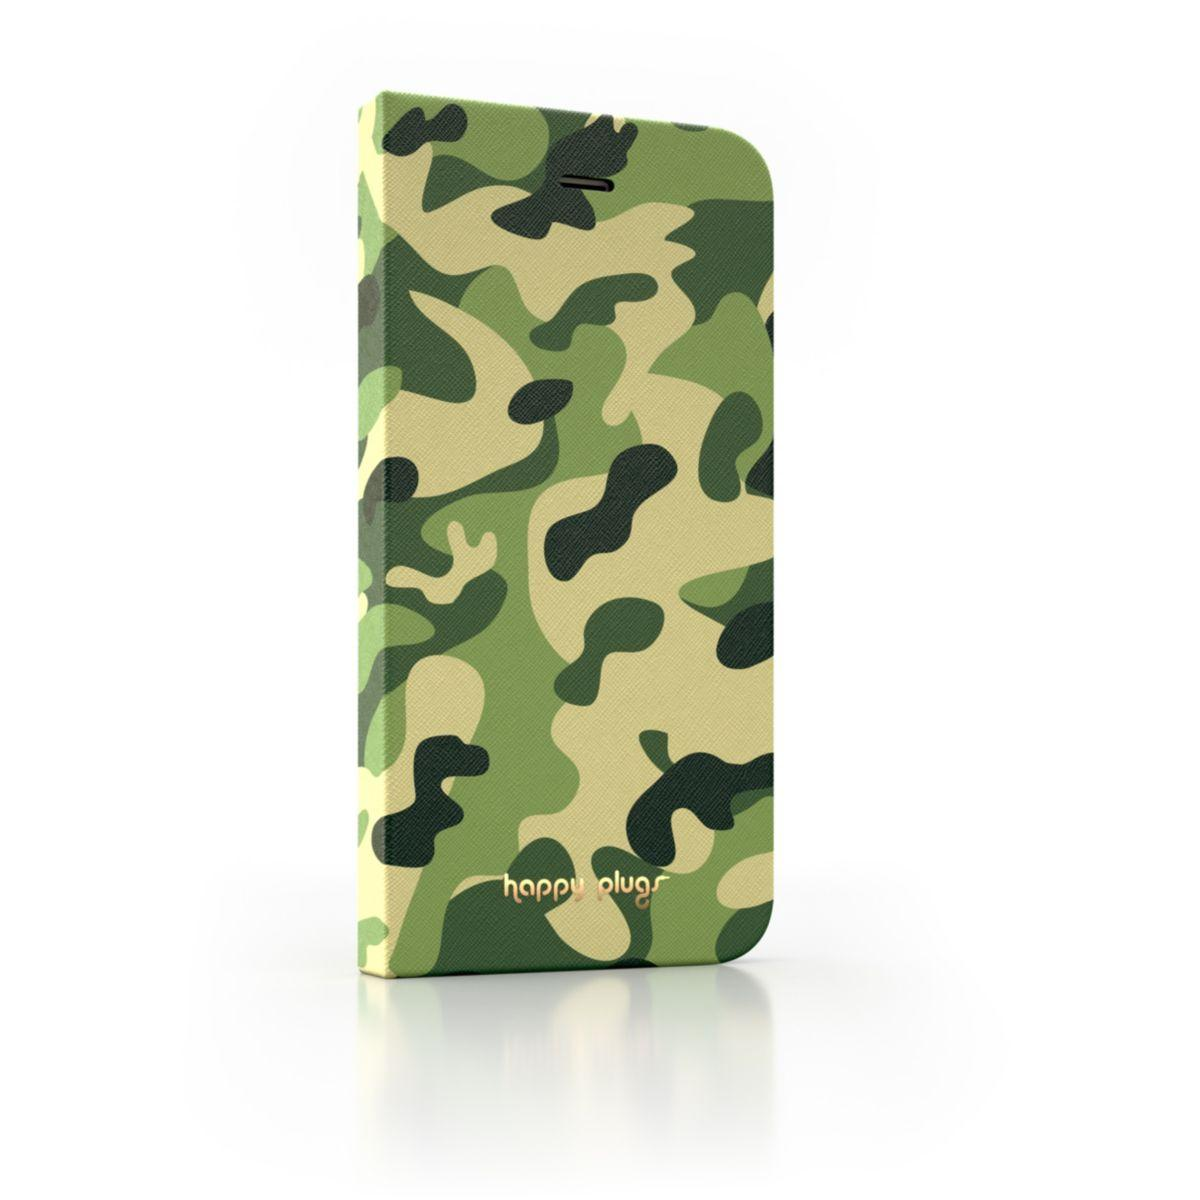 Etui happy plugs iphone 6/6s camouflage - livraison offerte : code relay